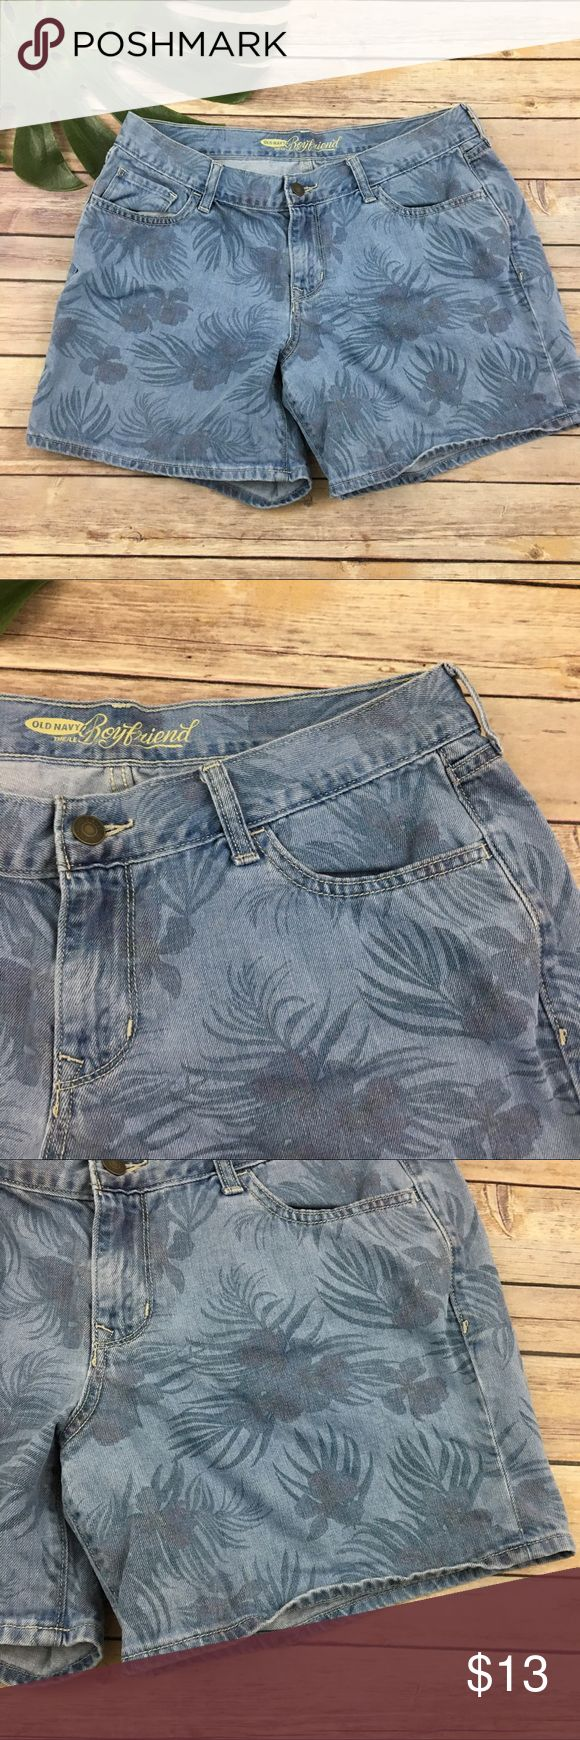 Old Navy boyfriend tropical print denim shorts Old Navy boyfriend tropical print jean shorts, size 10. They are free from any rips or stains. They measure about 35 inches around the waist and the inseam is about 6 inches. The rise is about 9 inches. Old Navy Shorts Jean Shorts